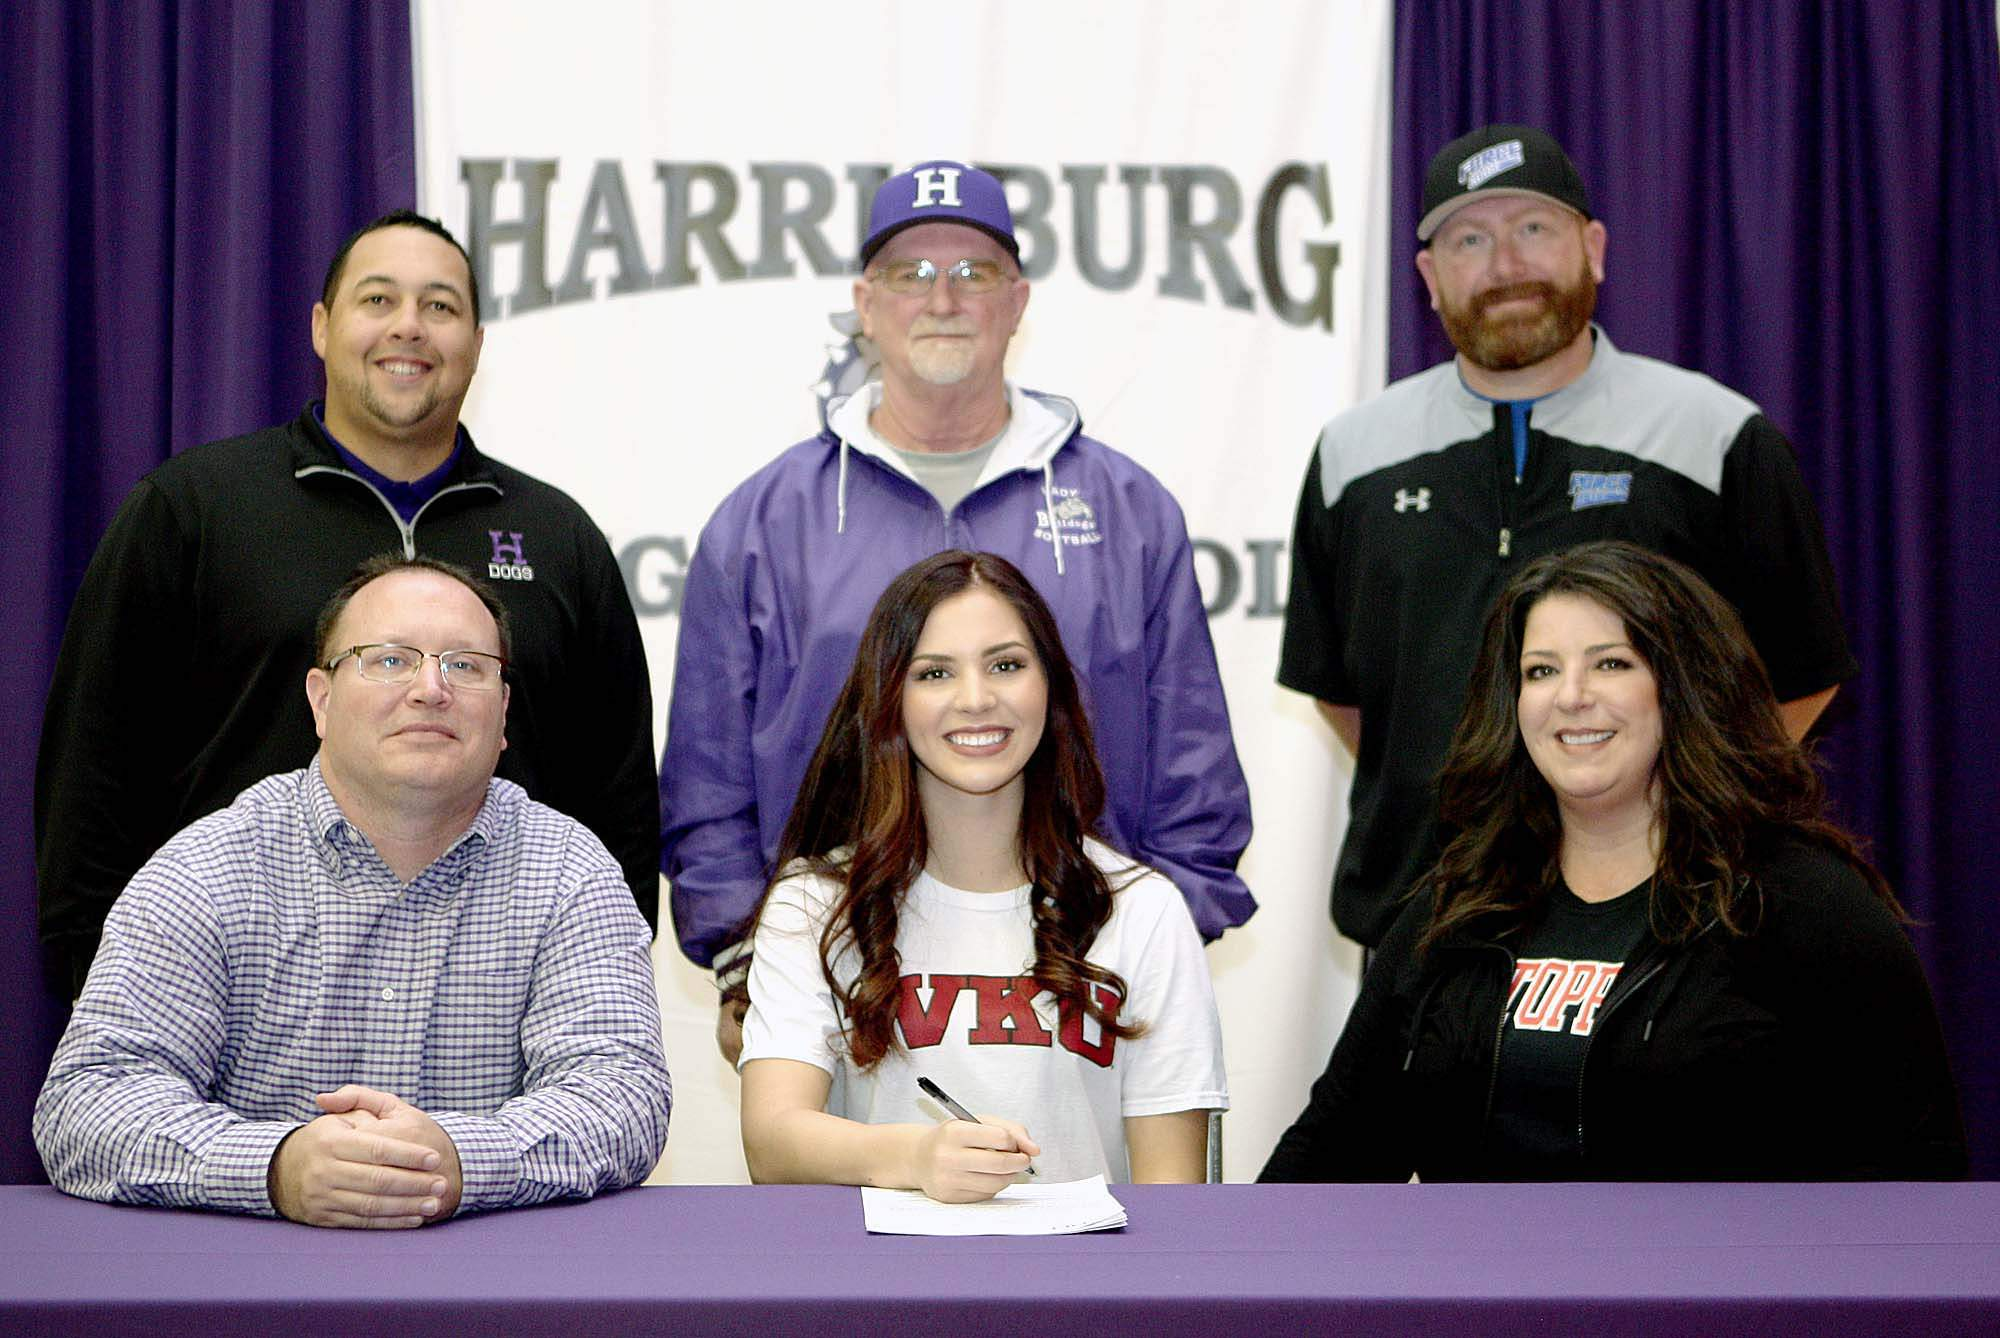 Madeline Rider, a senior at Harrisbug High School, signed a National Letter of Intent to continue her softball career at Western Kentucky University. Pictured with Rider are her father, Shannon and her mother Adrienne, along with, coaches (from left) Jake Stewart, Red Stafford and Brett Sullivan.